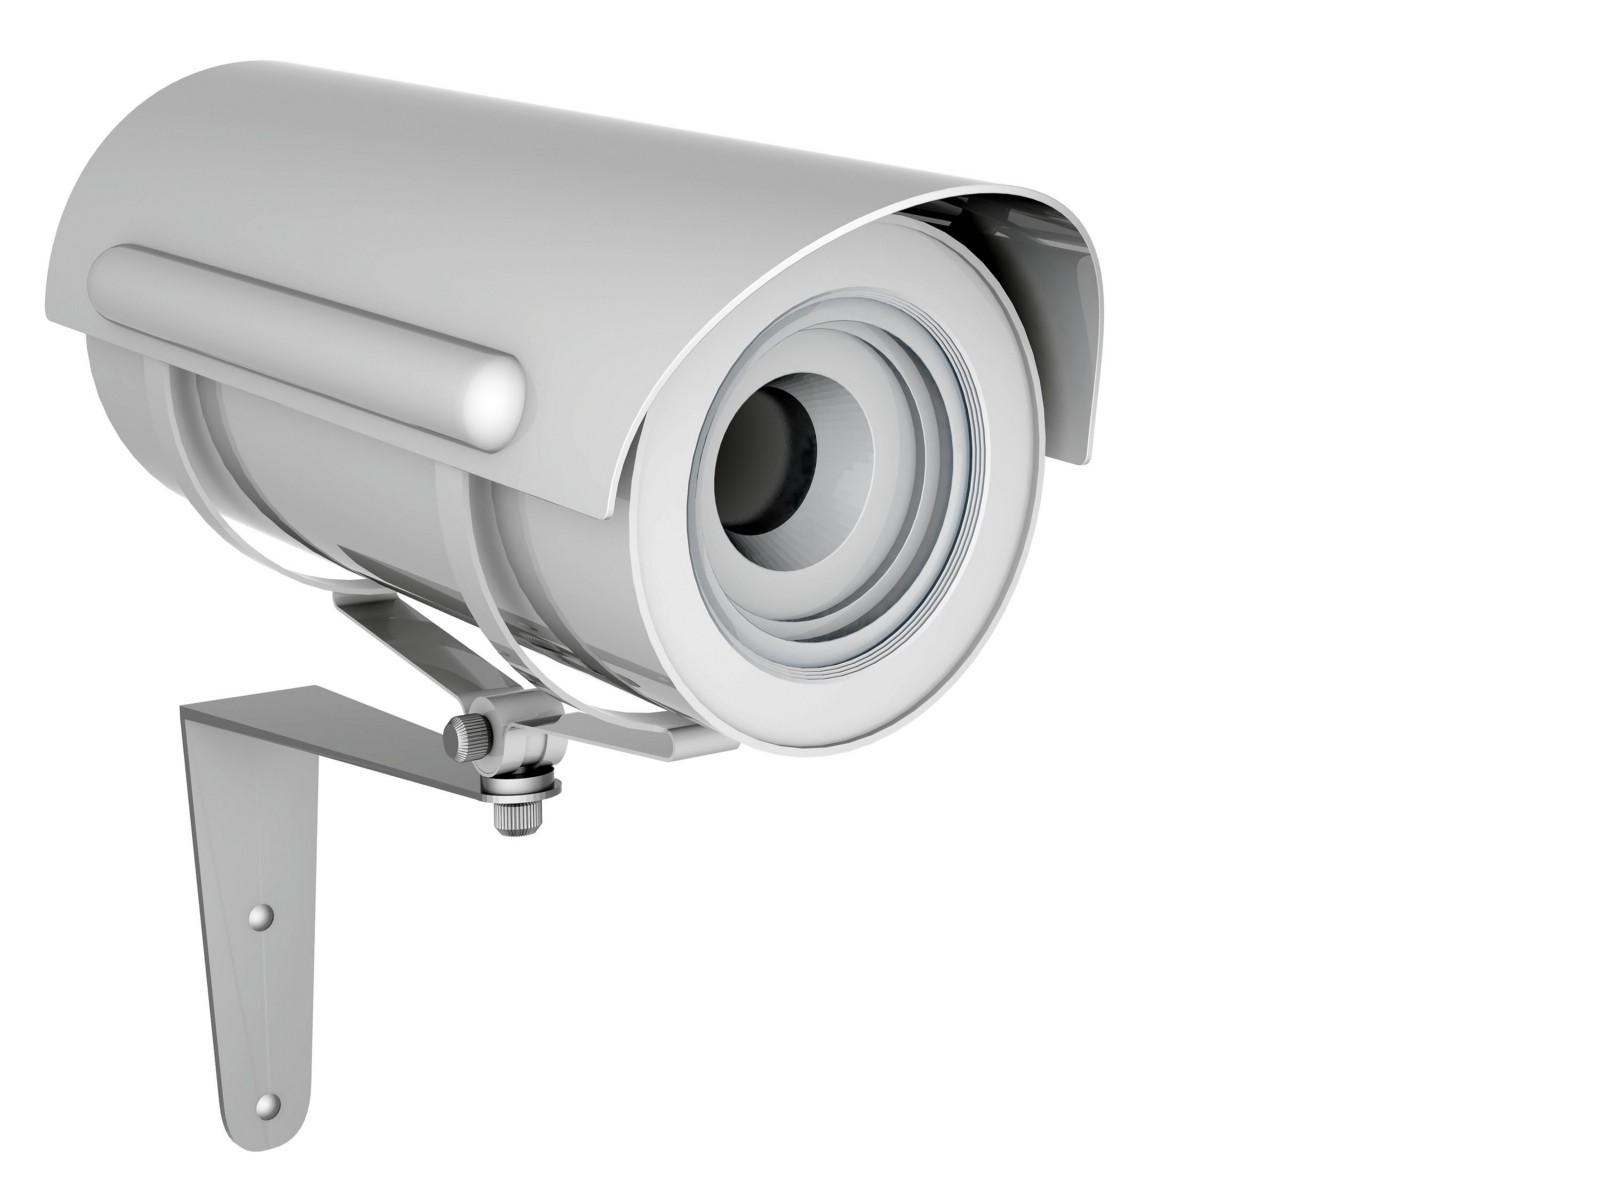 advantages of security cameras